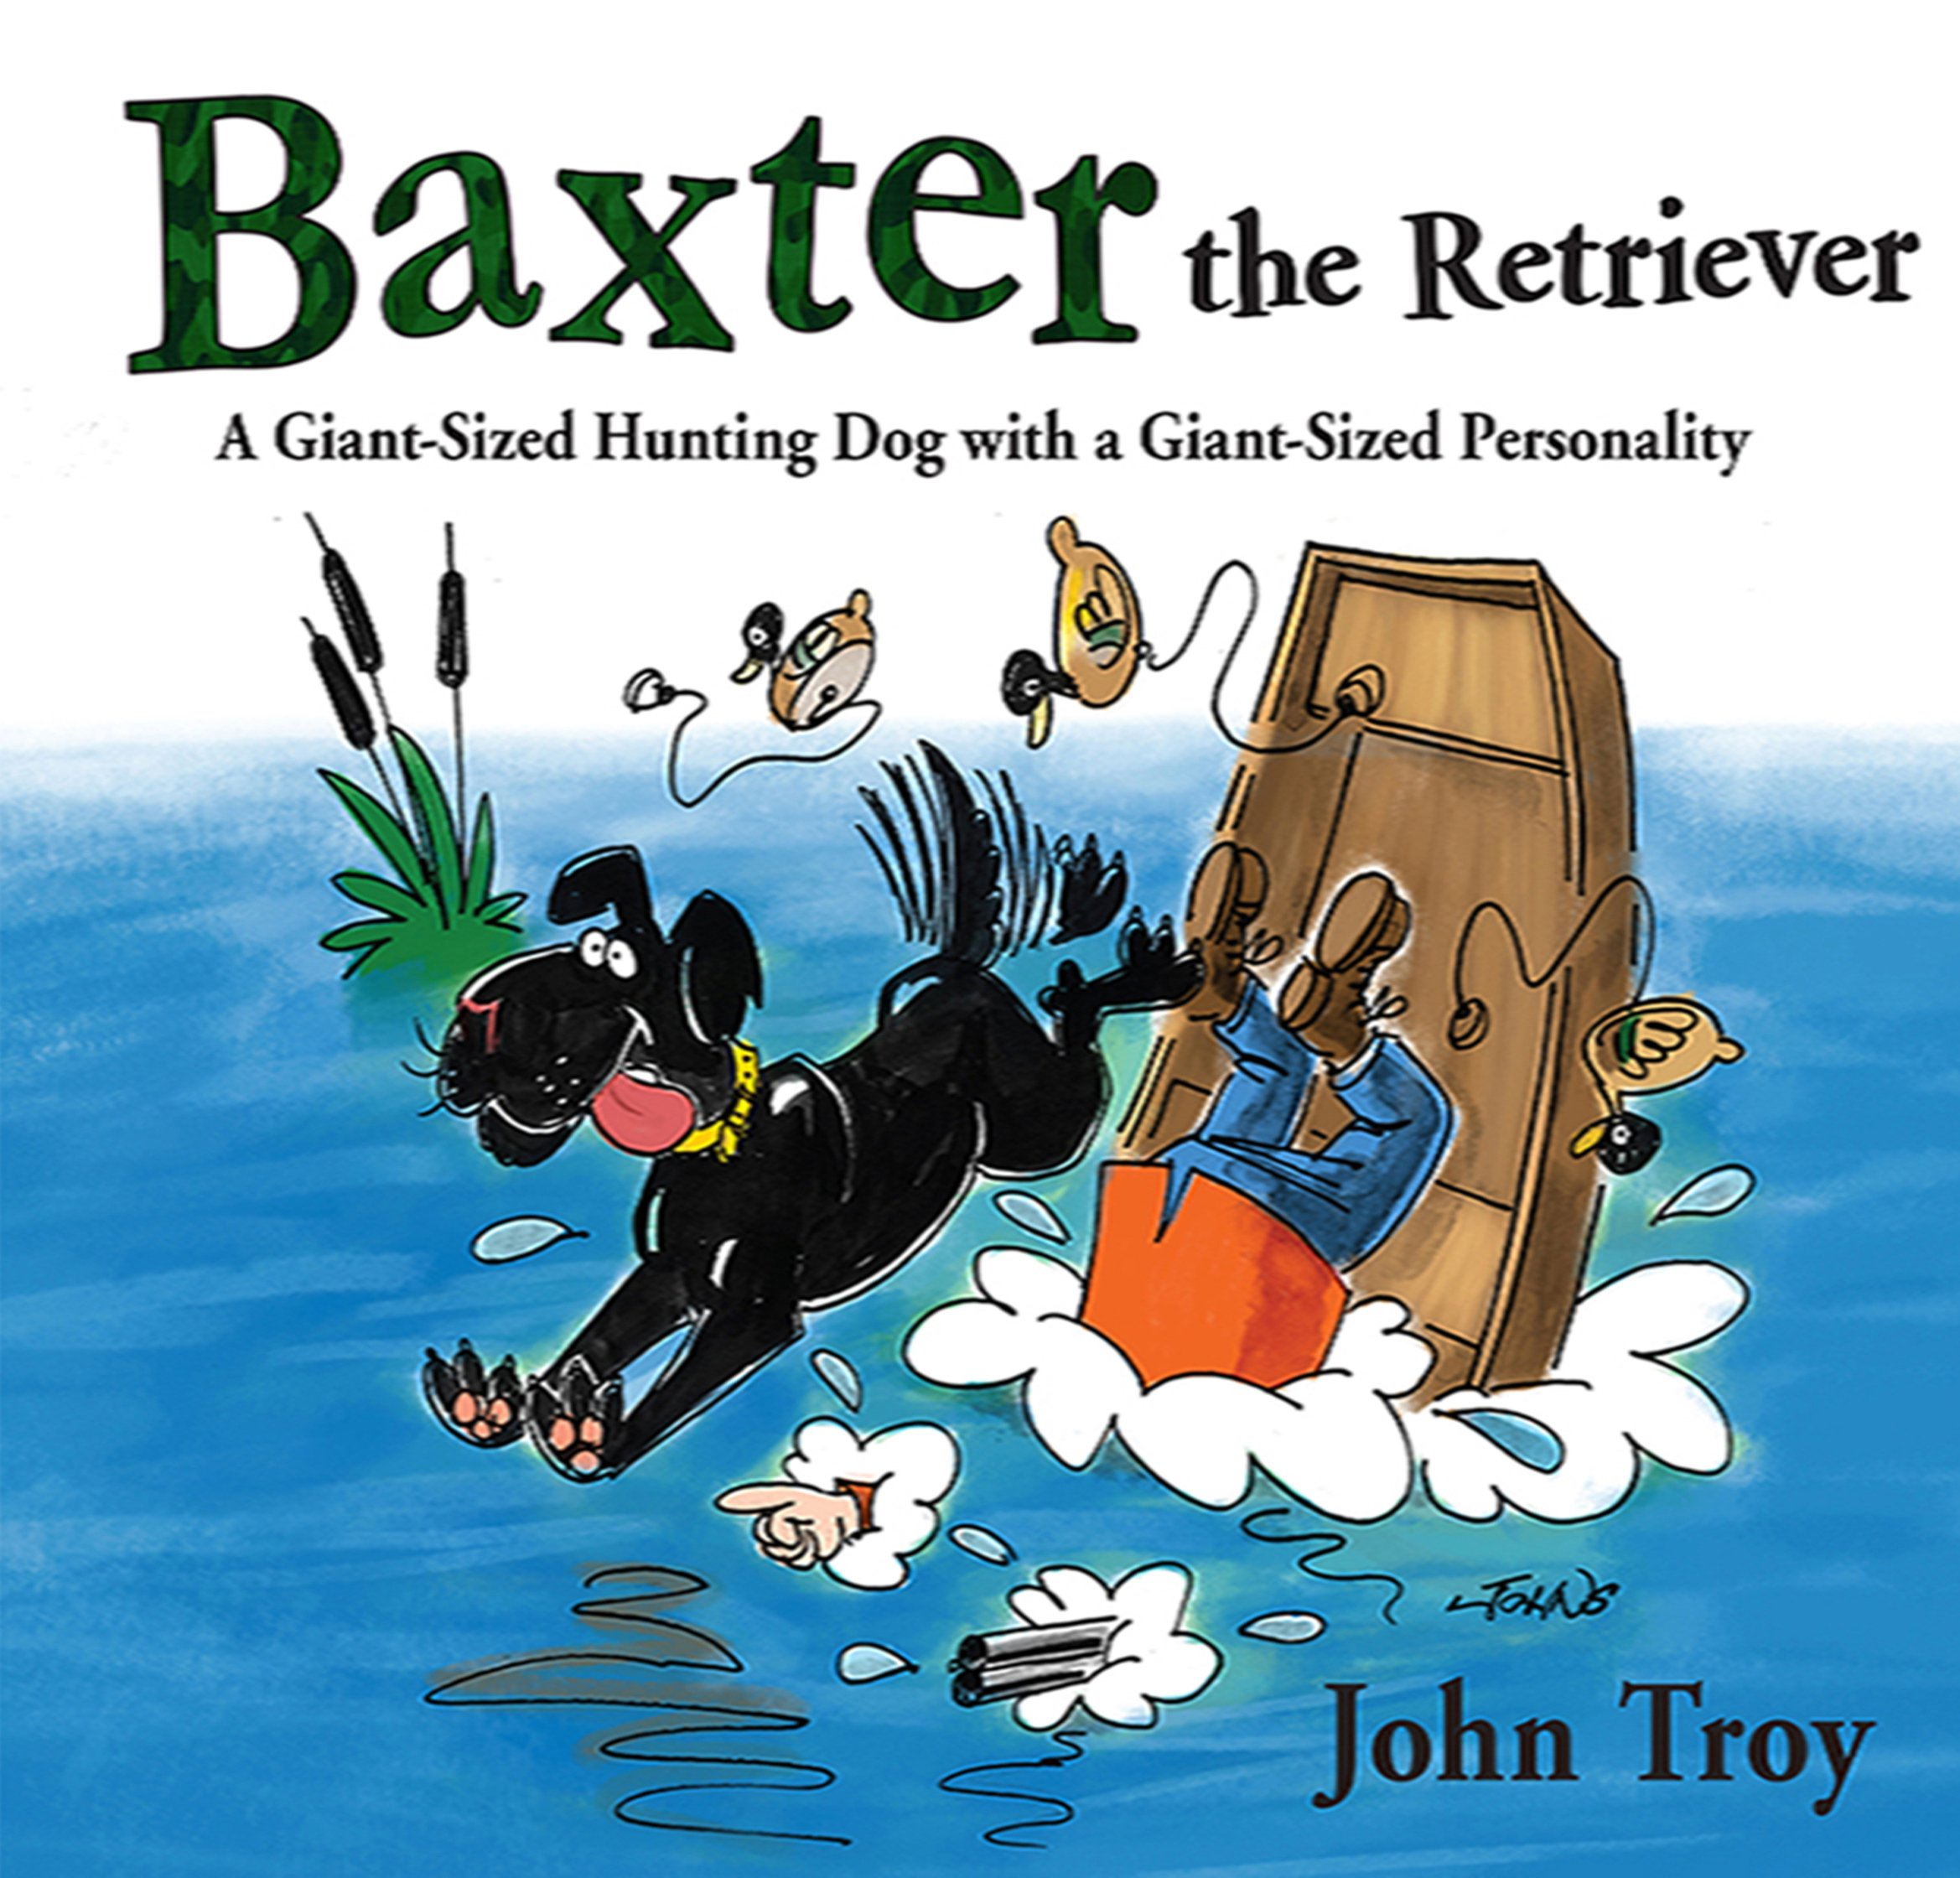 Download Baxter the Retriever: A Giant-Sized Hunting Dog with a Giant-Sized Personality PDF